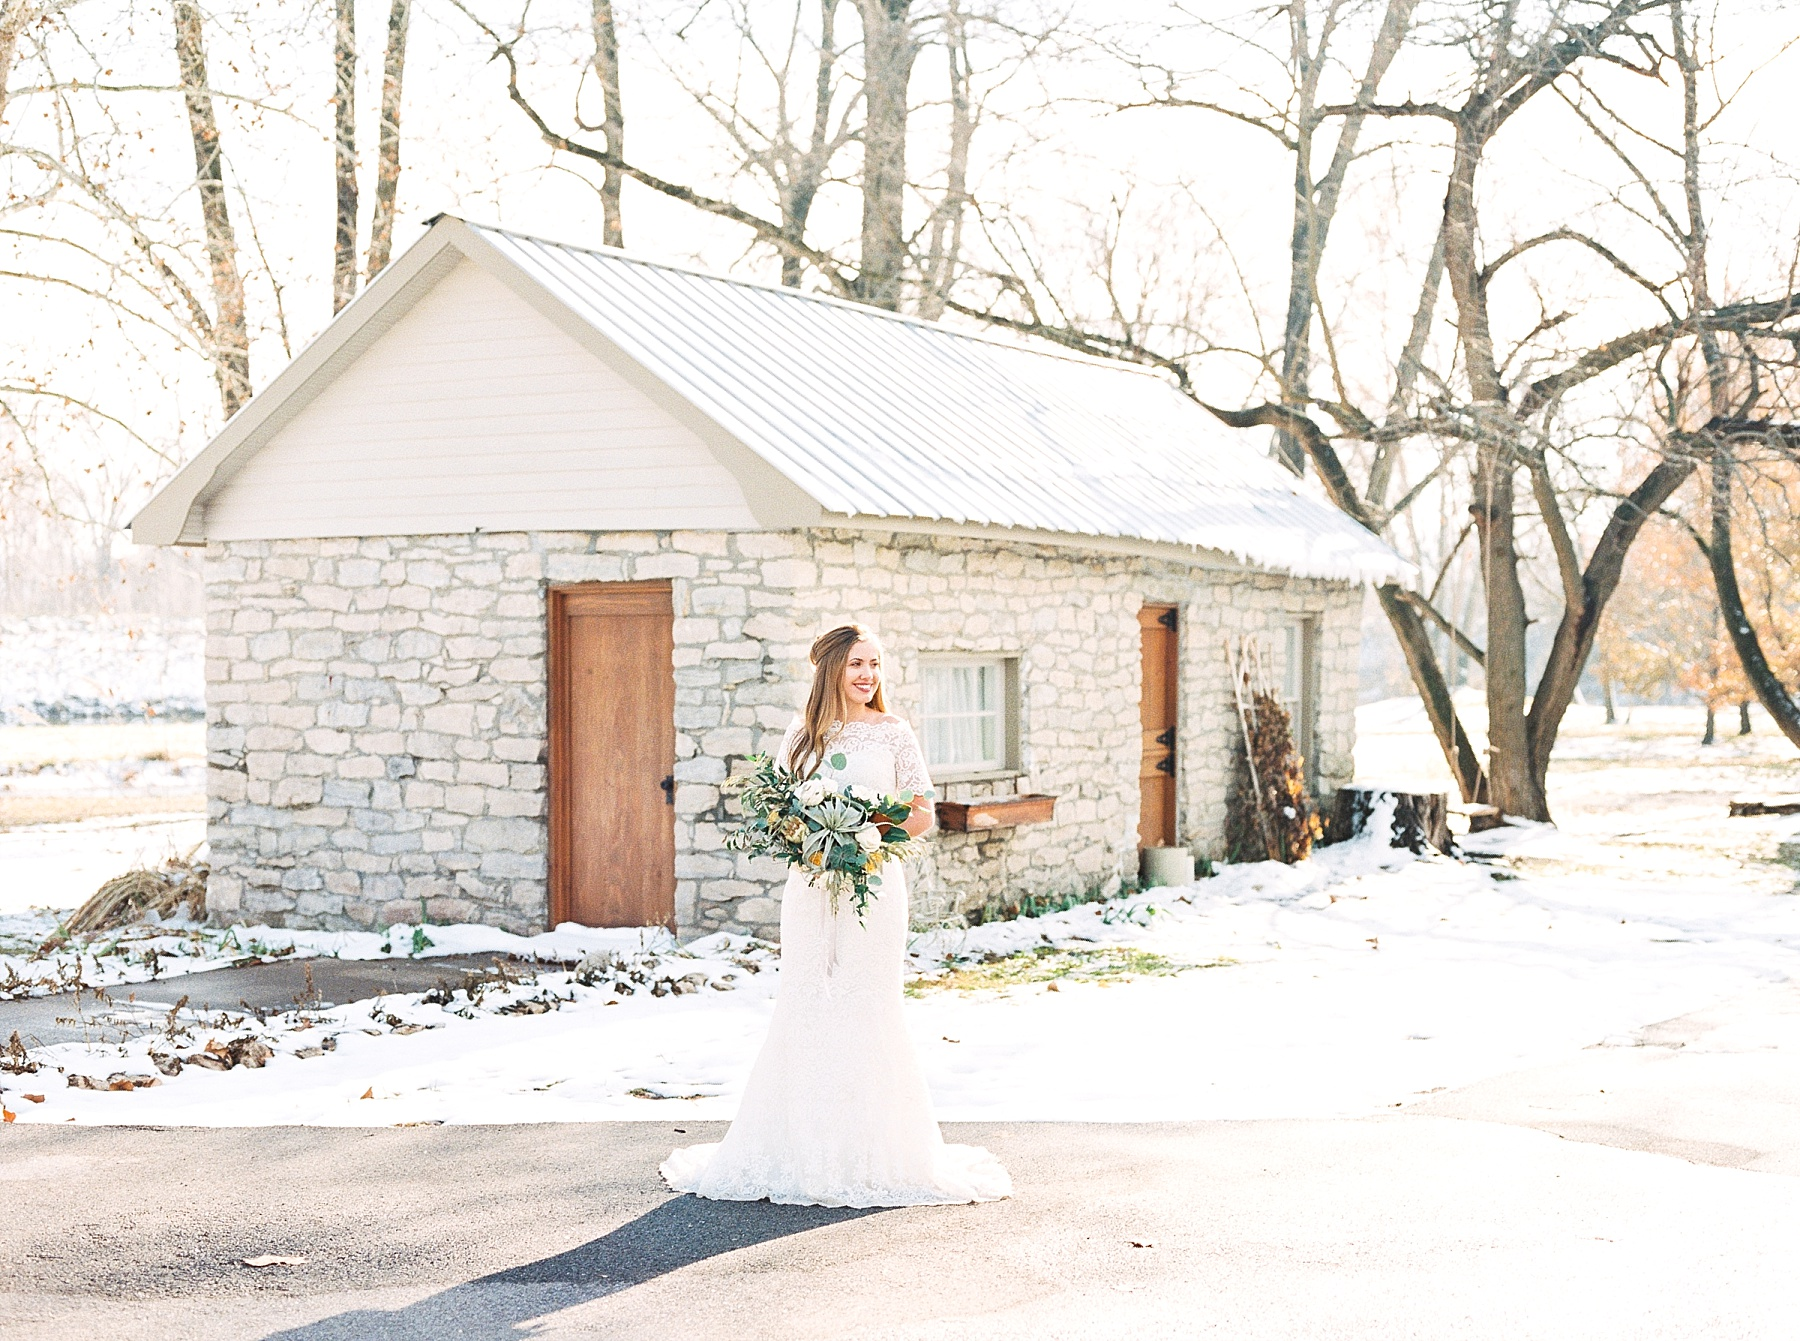 Snowy Winter Wedding at Wildcliff Events Lake With Earthy Jewel Tones and Organic Refined Style by Kelsi Kliethermes Photography Kansas City Missouri Wedding Photographer_0039.jpg